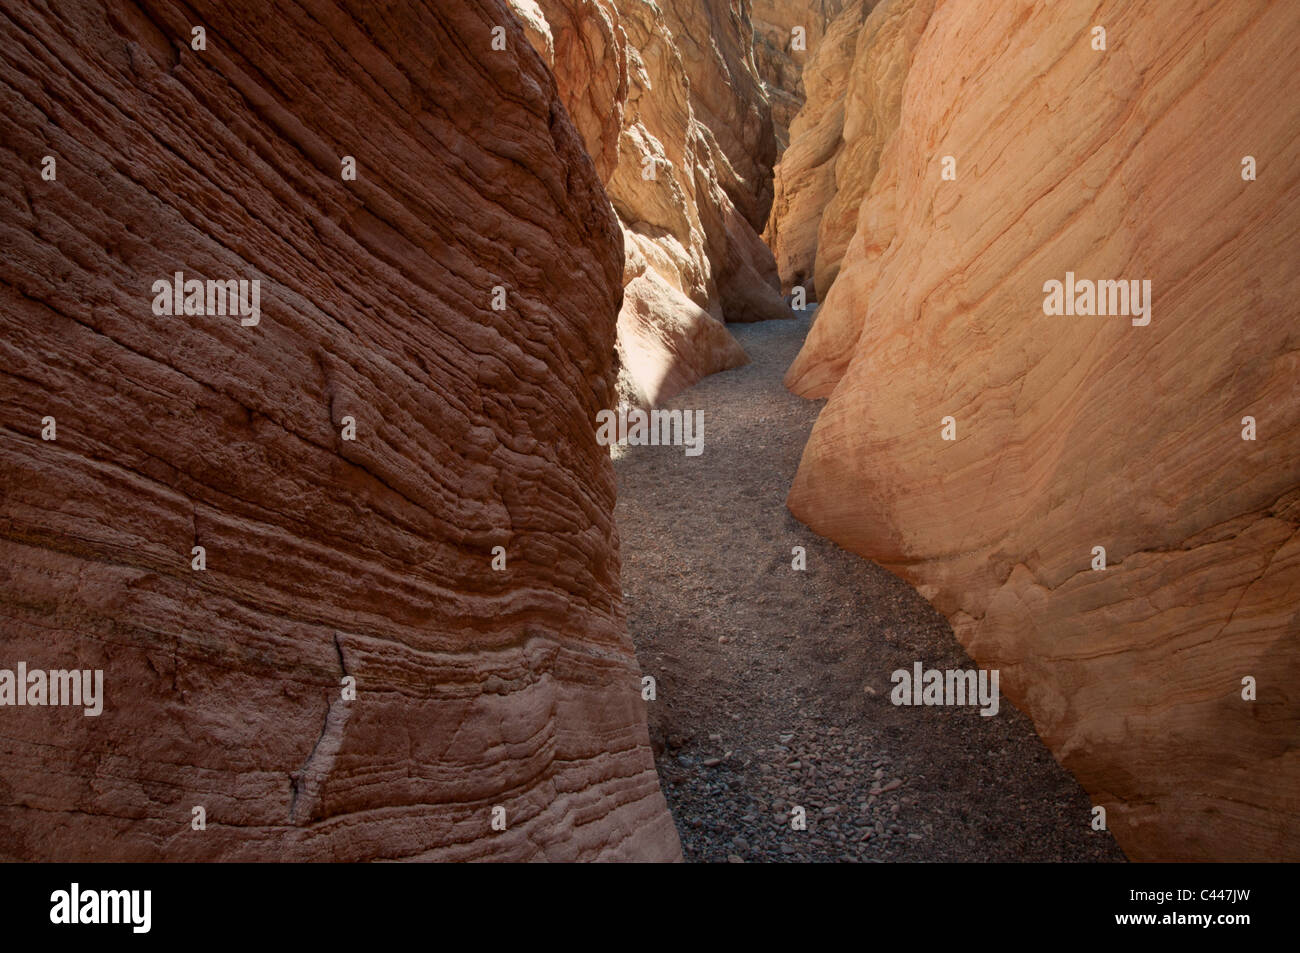 Lovell narrows, Lake Mead National Recreation Area, Nevada, USA, North America, stone, rock, formations, canyon Stock Photo